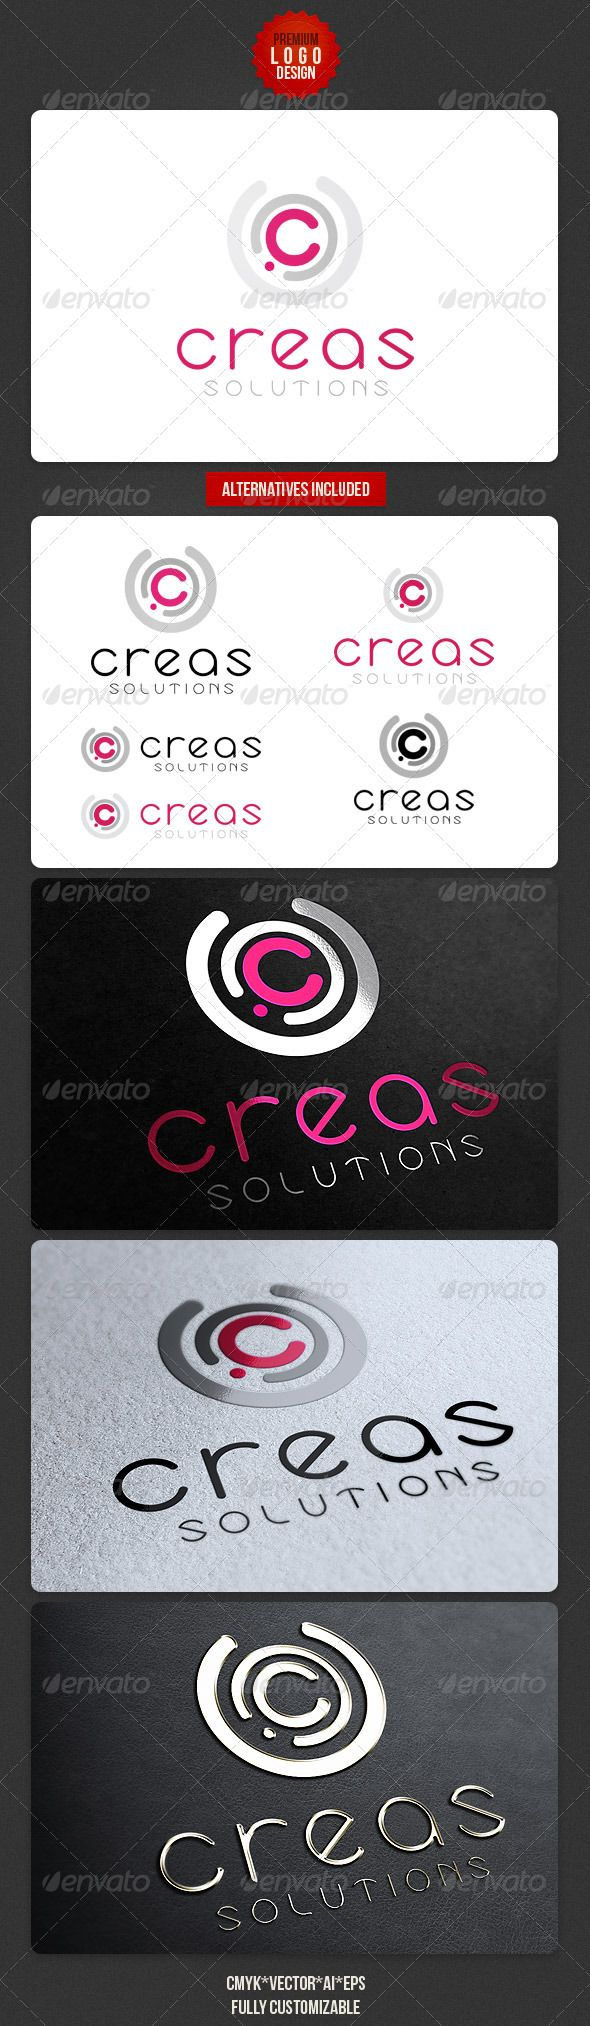 Clean Technology Logo Design Template  #GraphicRiver         Clean and creative vector logo template for your project. Great for technology themes.   CMYK , Adobe Illustrator AI file, EPS file, transparent PNG file. Free font: Cyclo –  .dafont /cyclo.font   Enjoy      Created: 12October12 GraphicsFilesIncluded: TransparentPNG #VectorEPS #AIIllustrator Layered: Yes MinimumAdobeCSVersion: CS Resolution: Resizable Tags: brand #branding #business #clean #cleanlogo #corporate #creative…